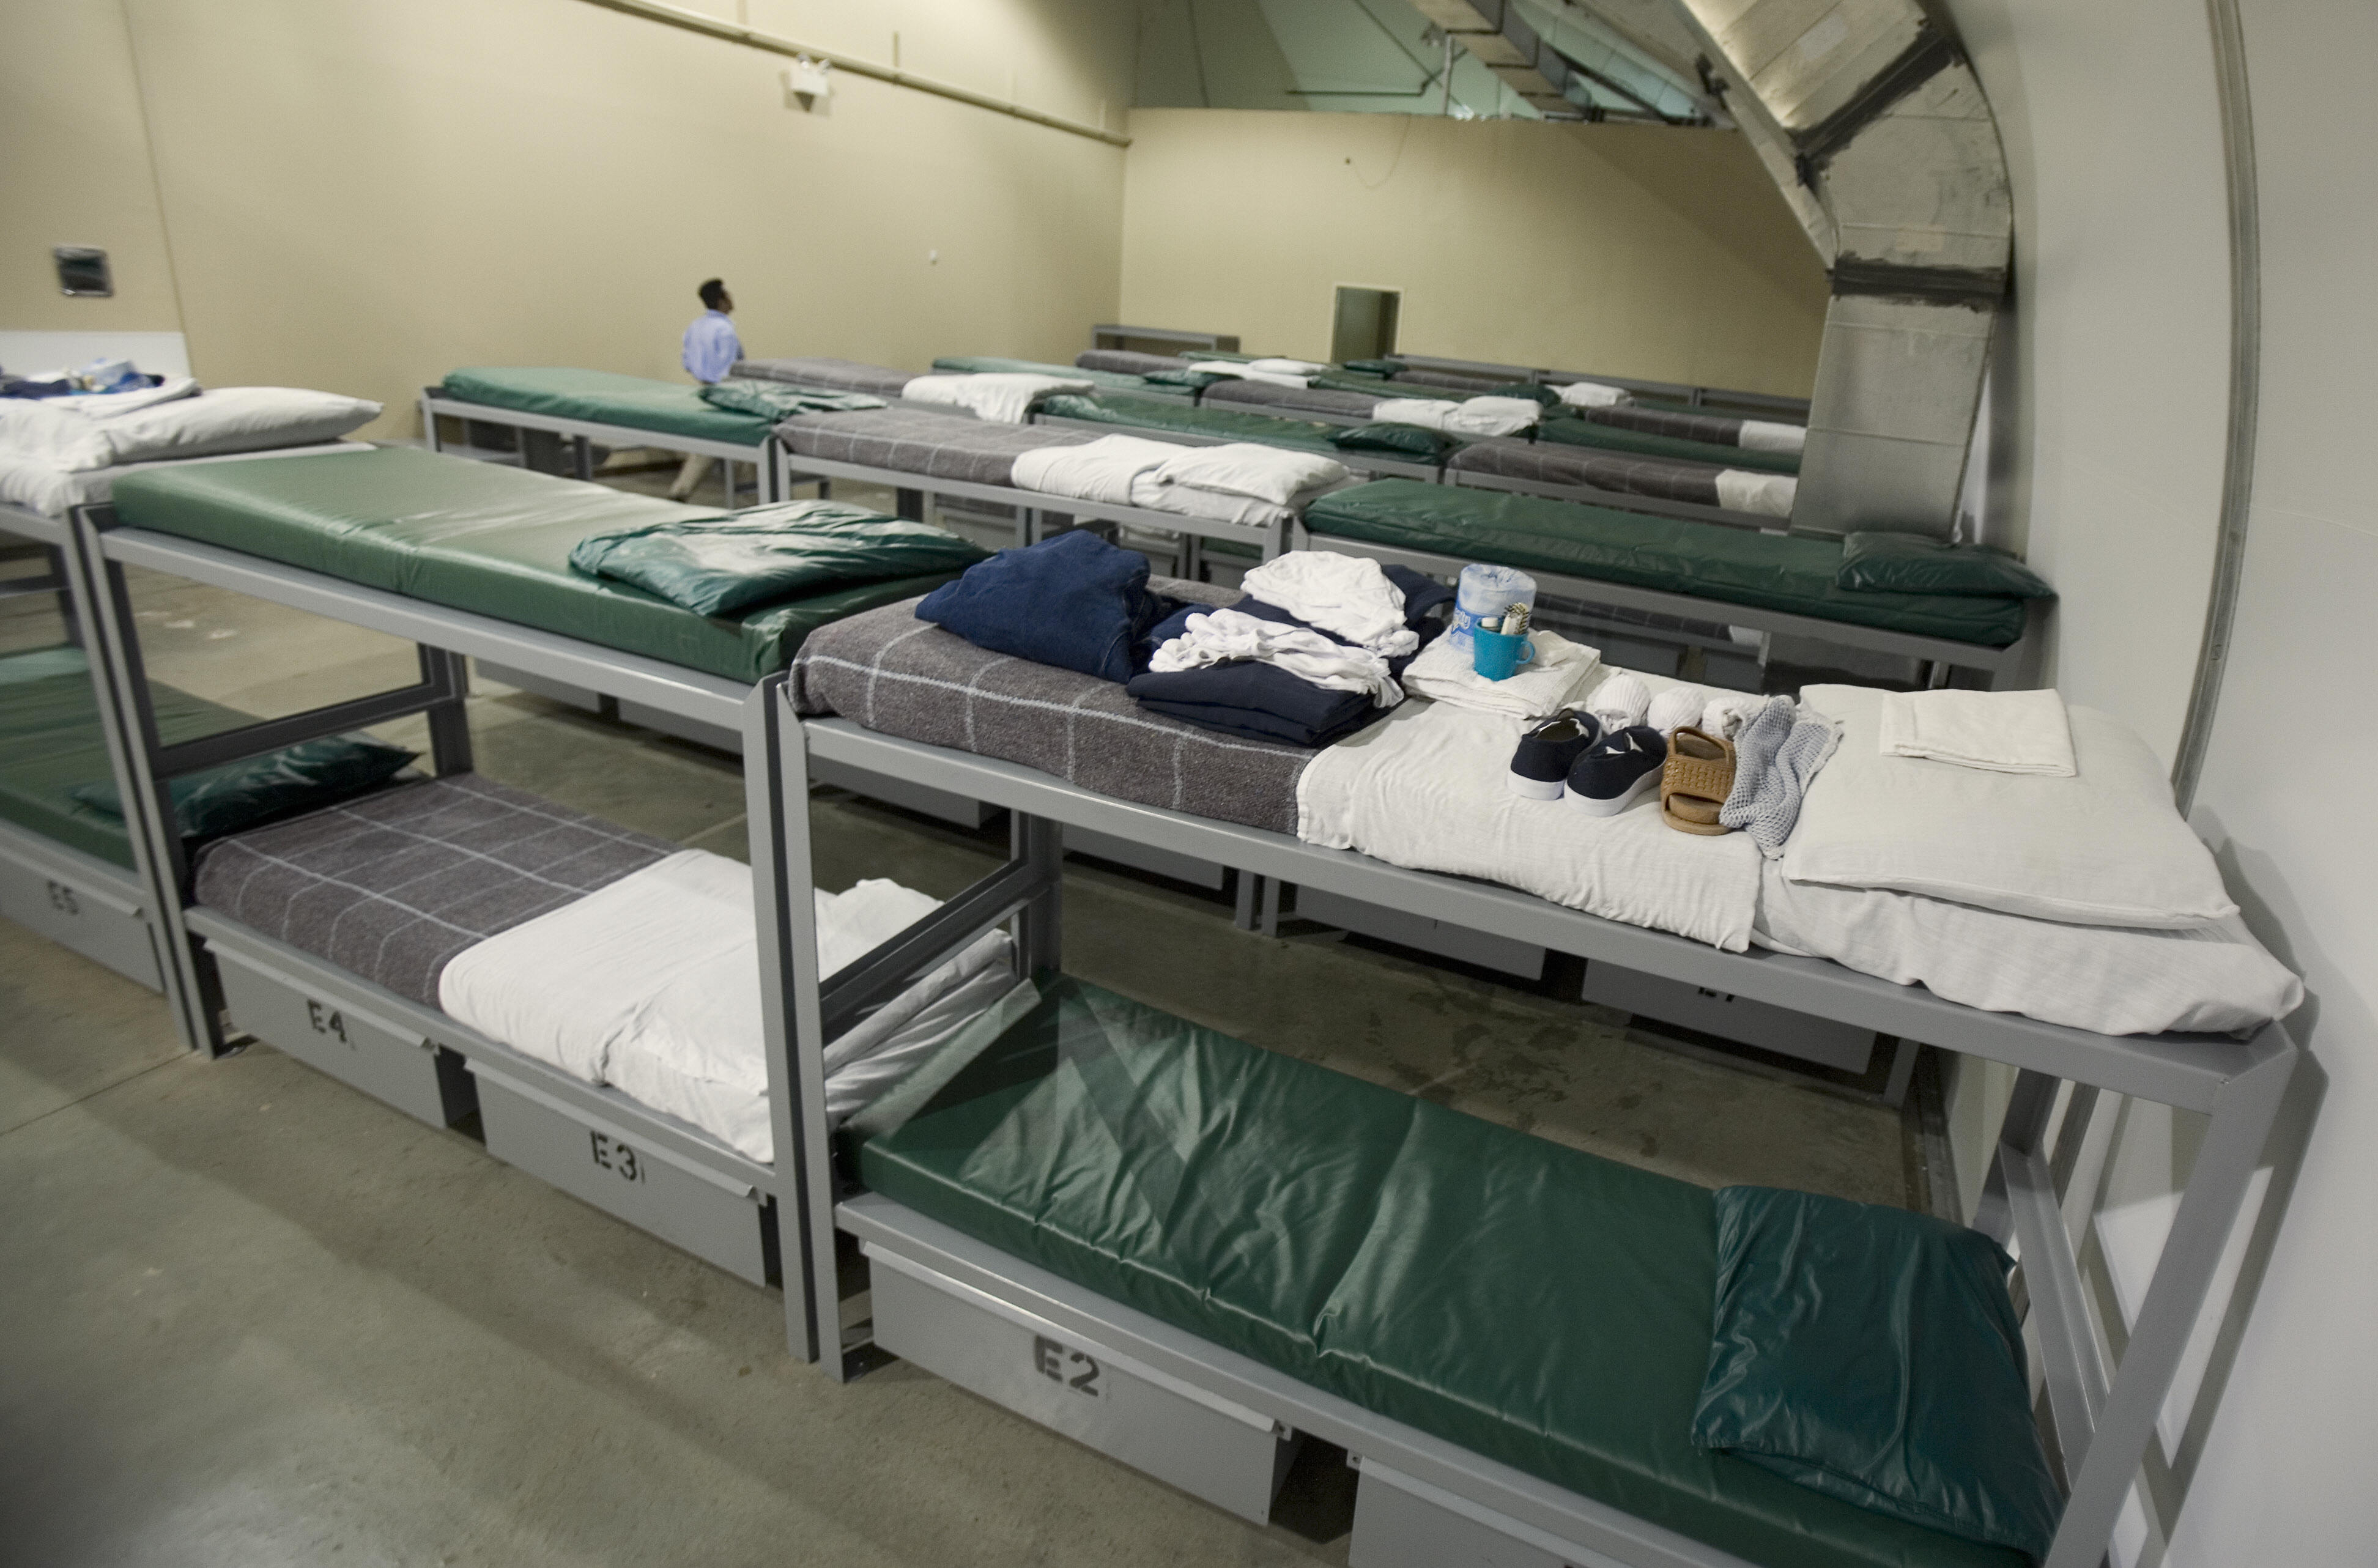 The detainee's bunk beds are seen inside Homeland Security's Willacy Detention Center, a facility with 10 giant tents that can house up to 2000 detained illegal immigrants, 10 May 2007 in Raymondville, Texas. AFP Photo/Paul J. Richards/Getty Images